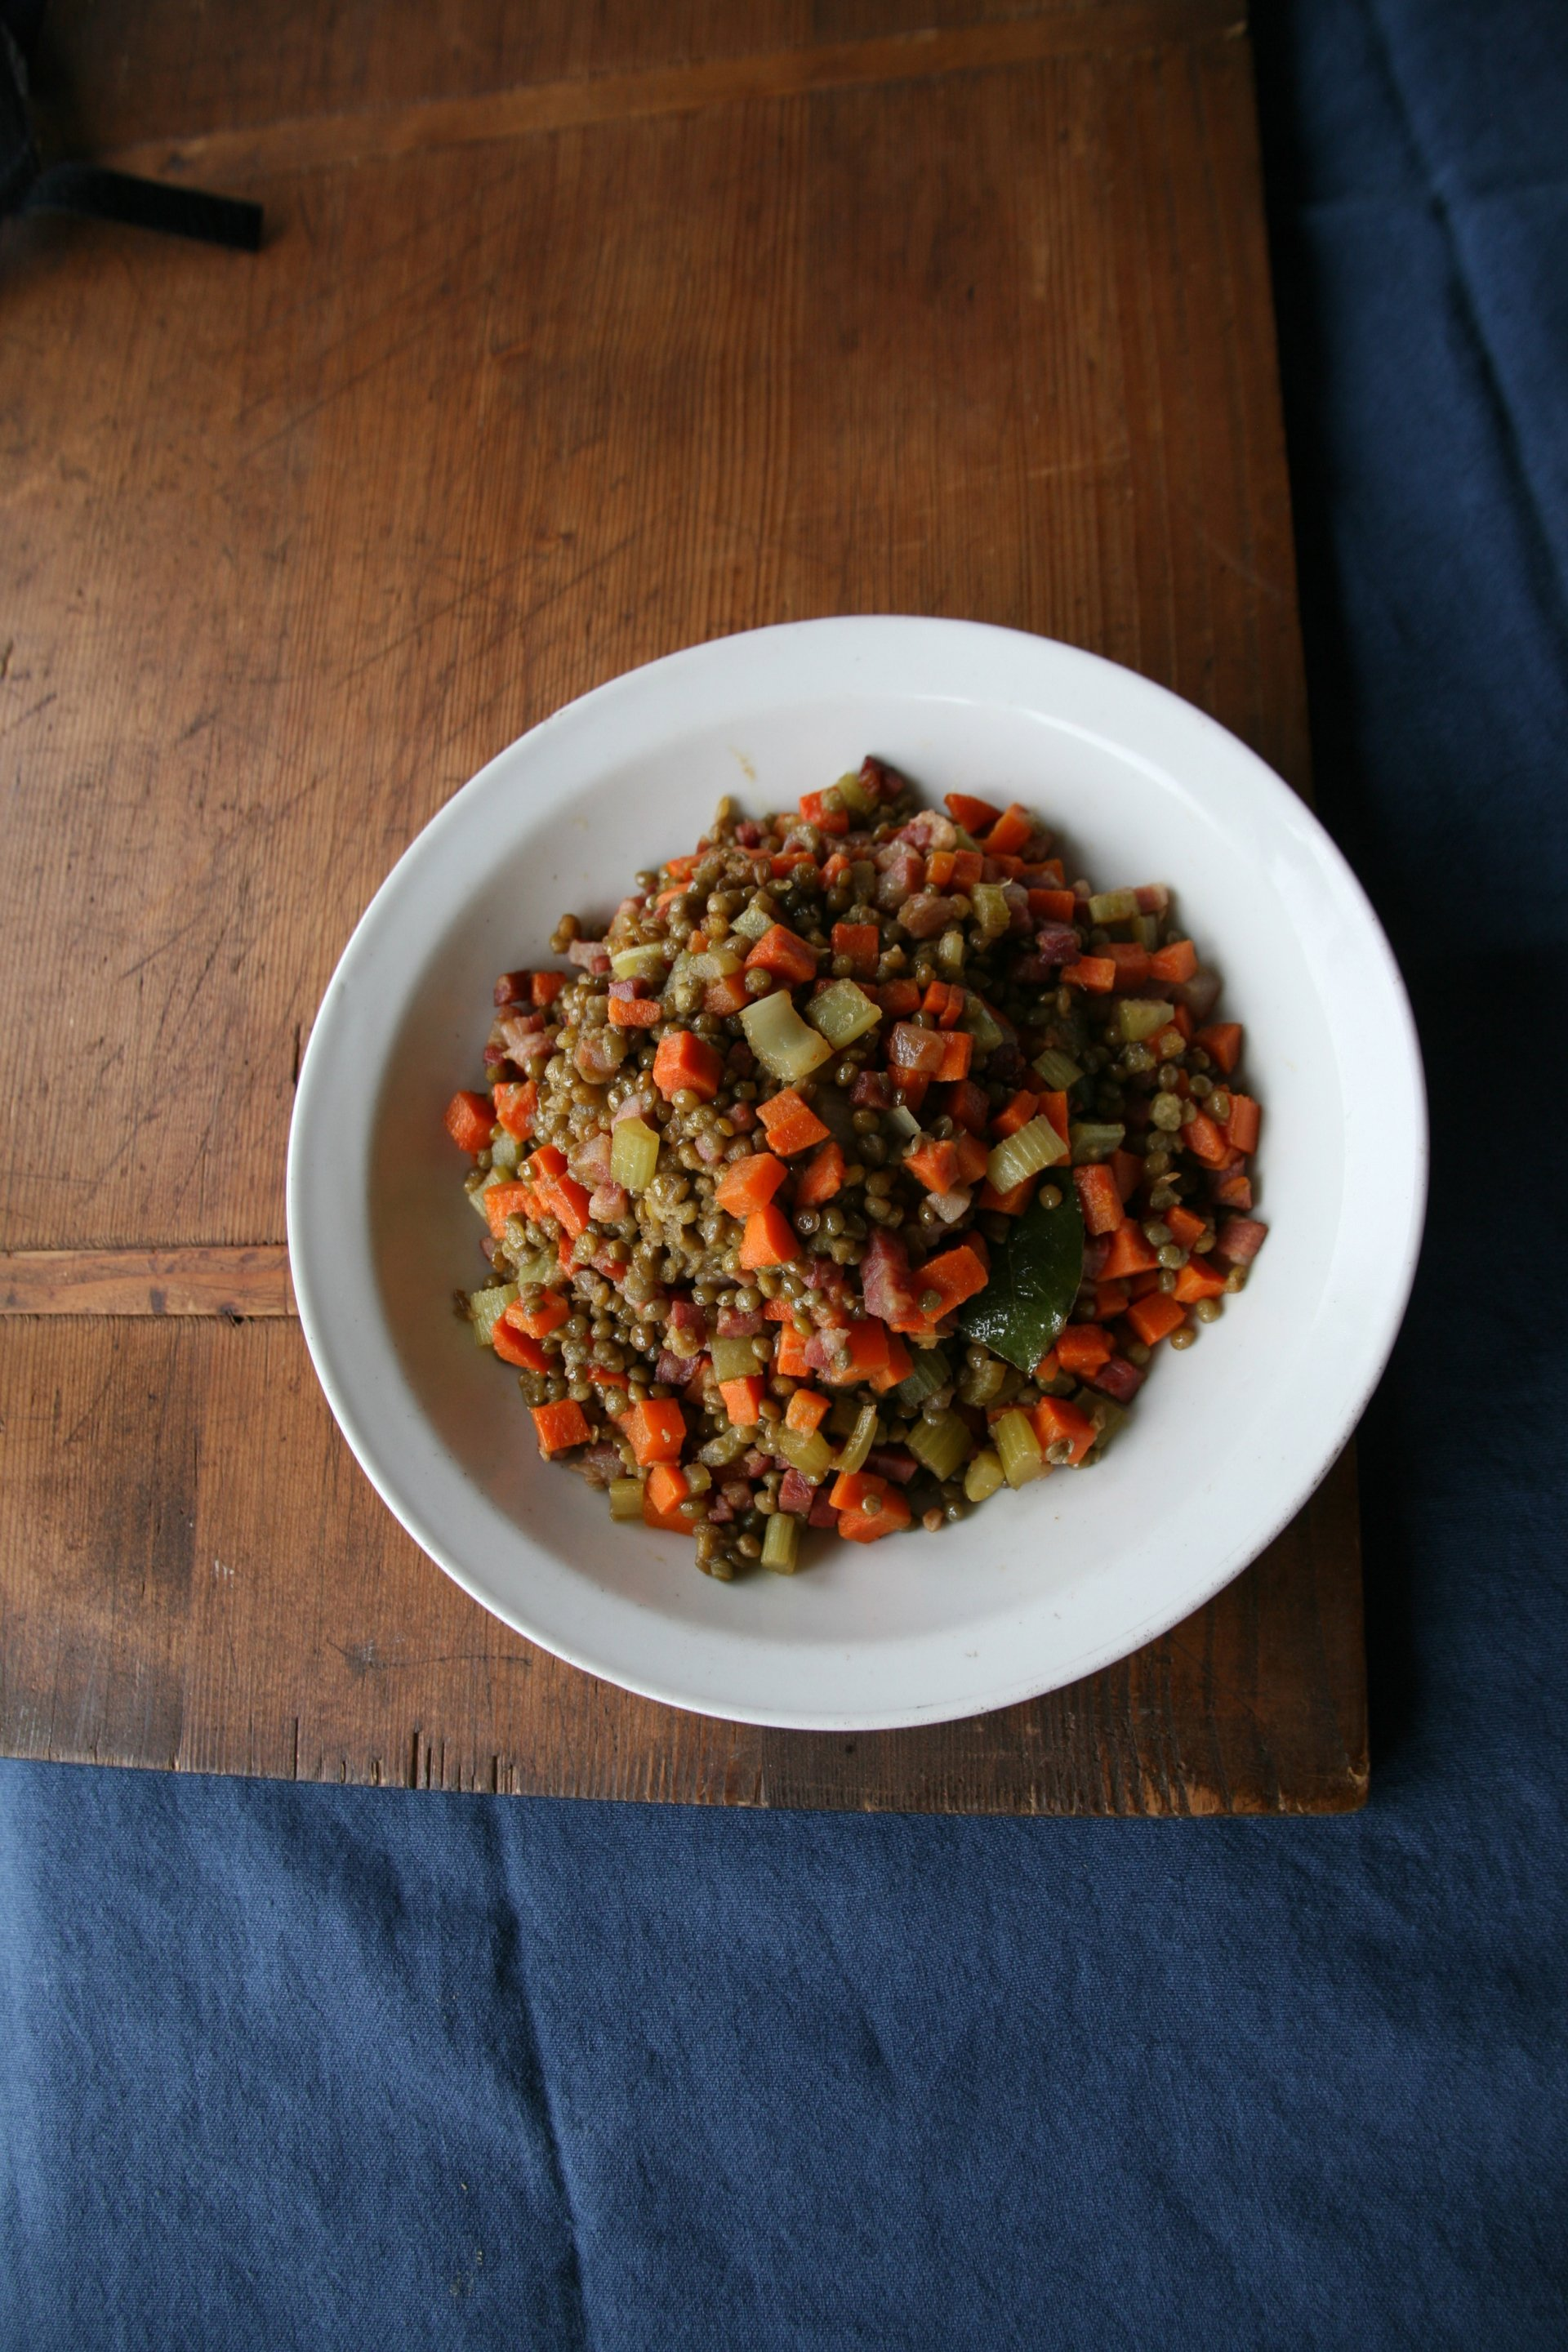 Lentil Country Salad by Lidia Bastianich